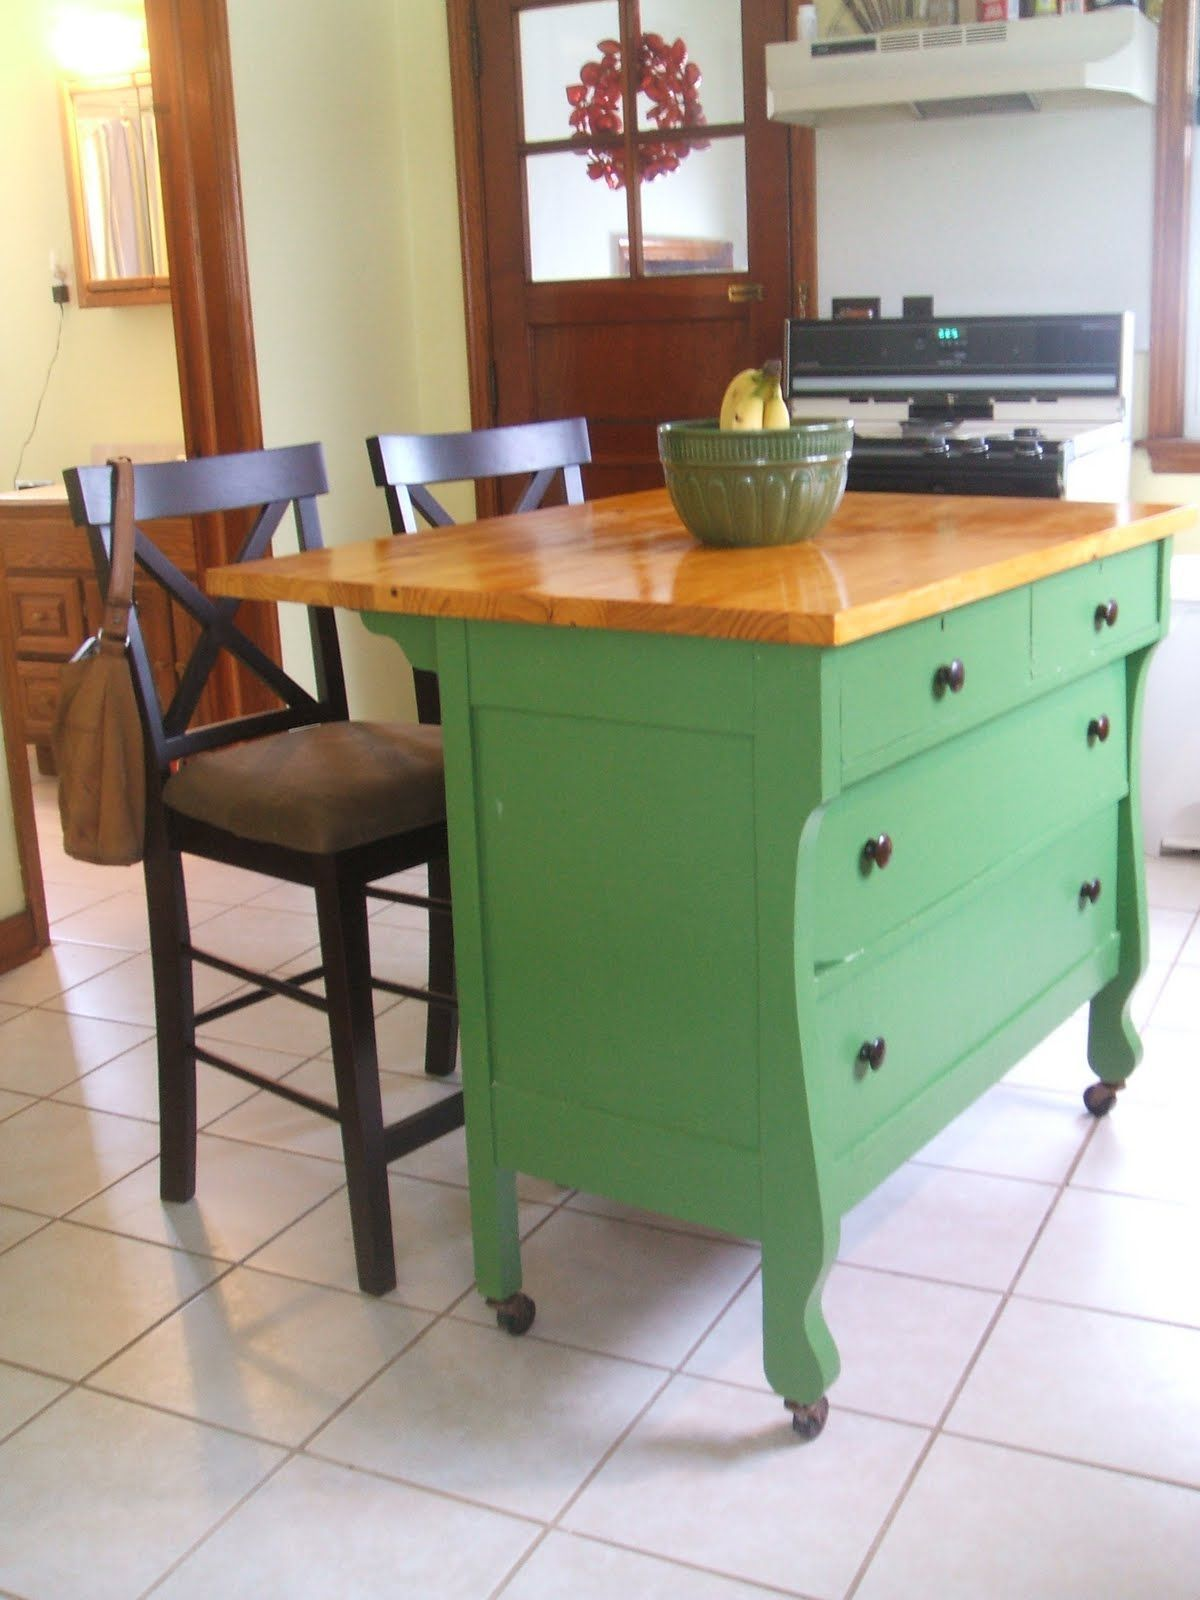 Portable kitchen island designs - Kitchen Small And Portable Kitchen Island Ideas Diy Cute And Green Kitchen Island Idea